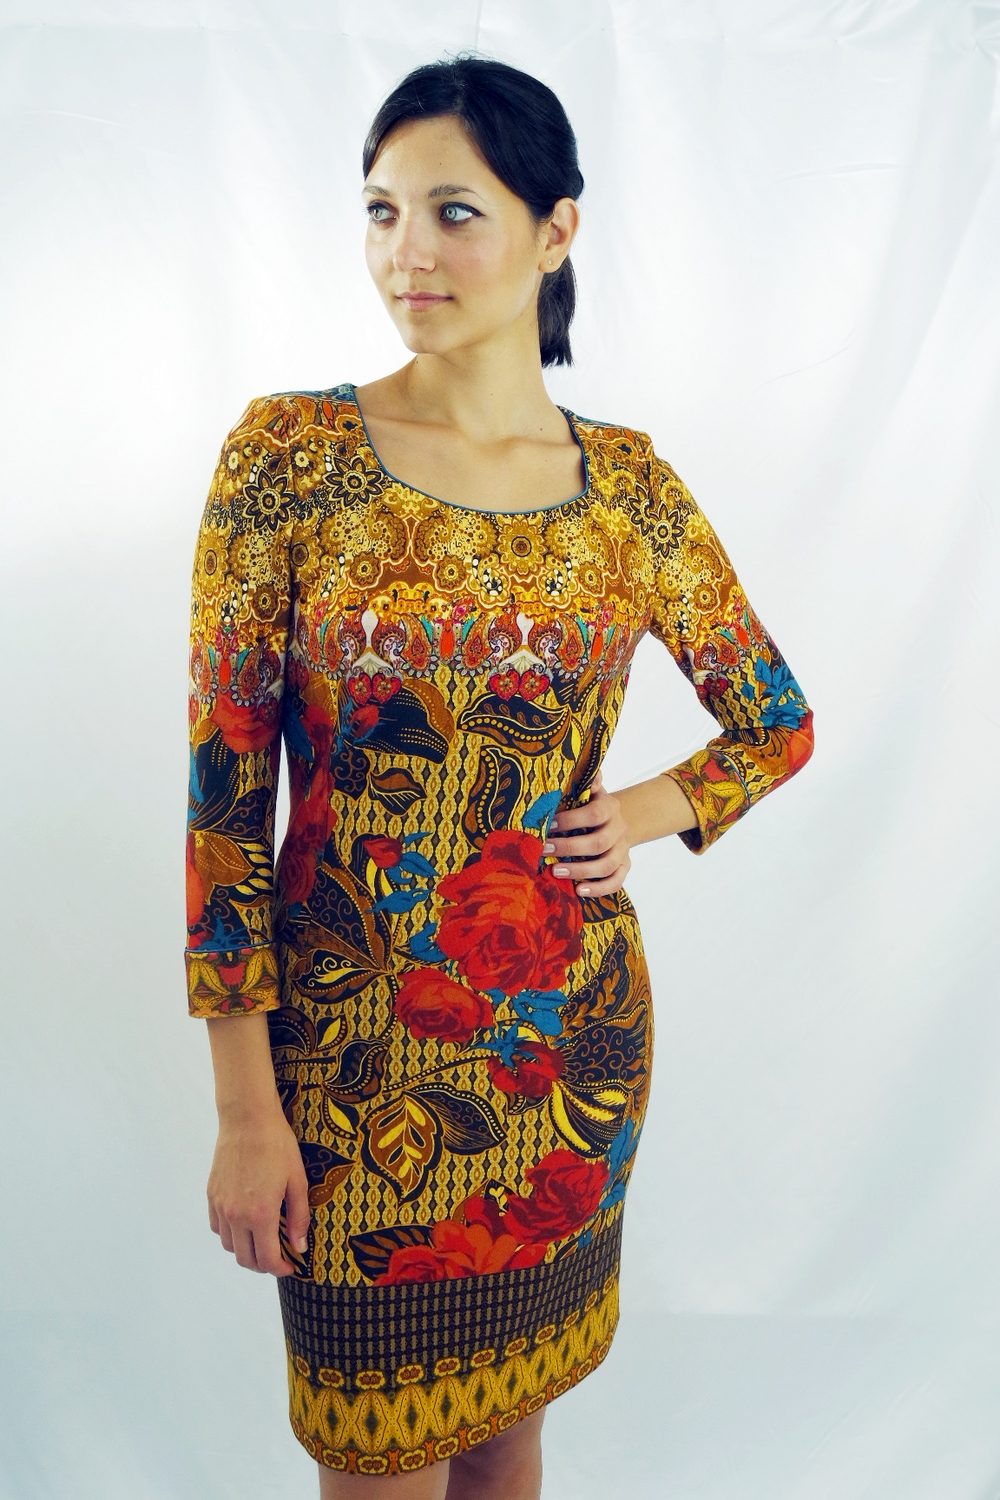 88bee3382c0 Viscose jersey dress in hazel - royal blue - brick red floral geometric  pattern - AtelierRita - High fashion - Tailoring clothes